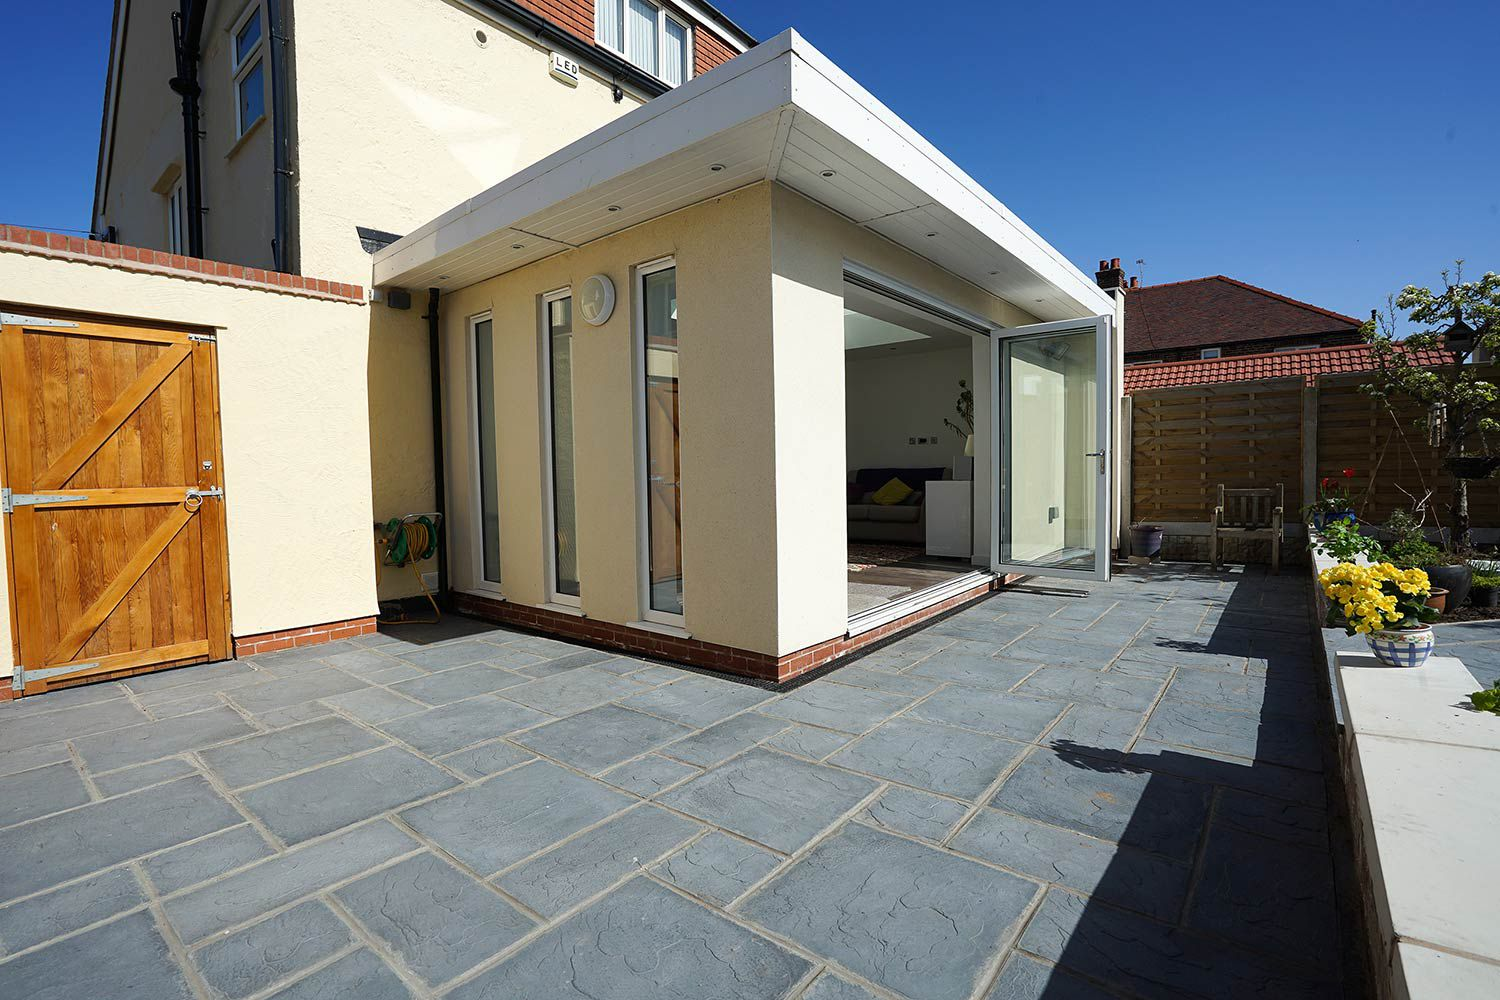 Modern orangery extension in Hoylake, Wirral.  Completed by Wirral builder OPB featuring a structural alteration to the existing kitchen to create an open plan kitchen / dining / living space to the downstairs of the property.